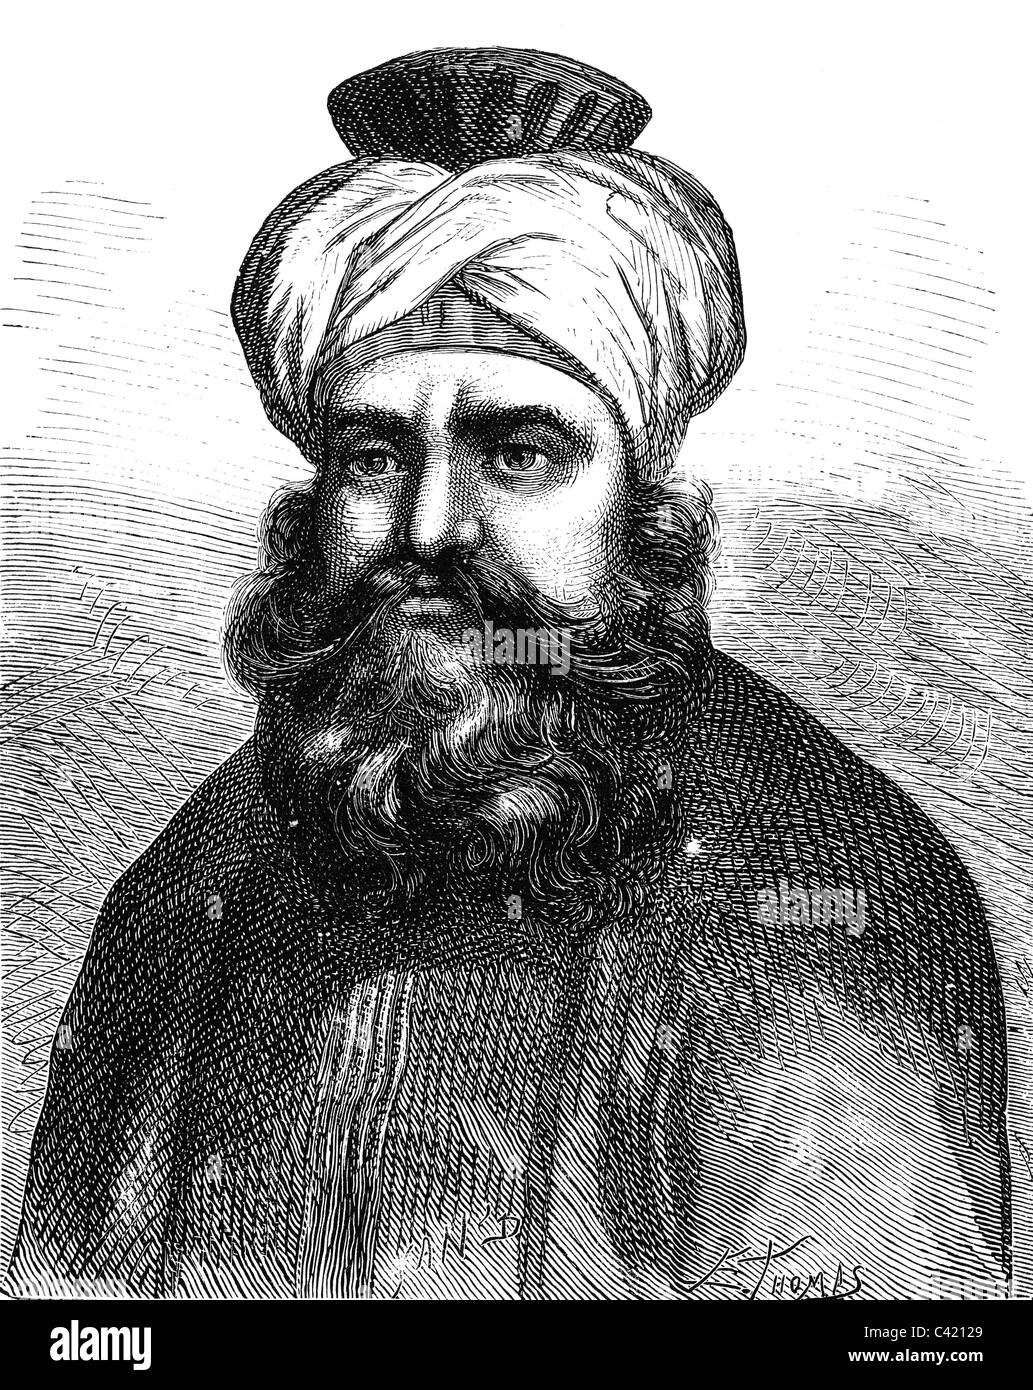 Murad Bey Muhammad, 1750 - 7.4.1801, Emir of Mamluks, Duovir of Egypt 1778 - 1798, portrait, wood engraving, 19th - Stock Image